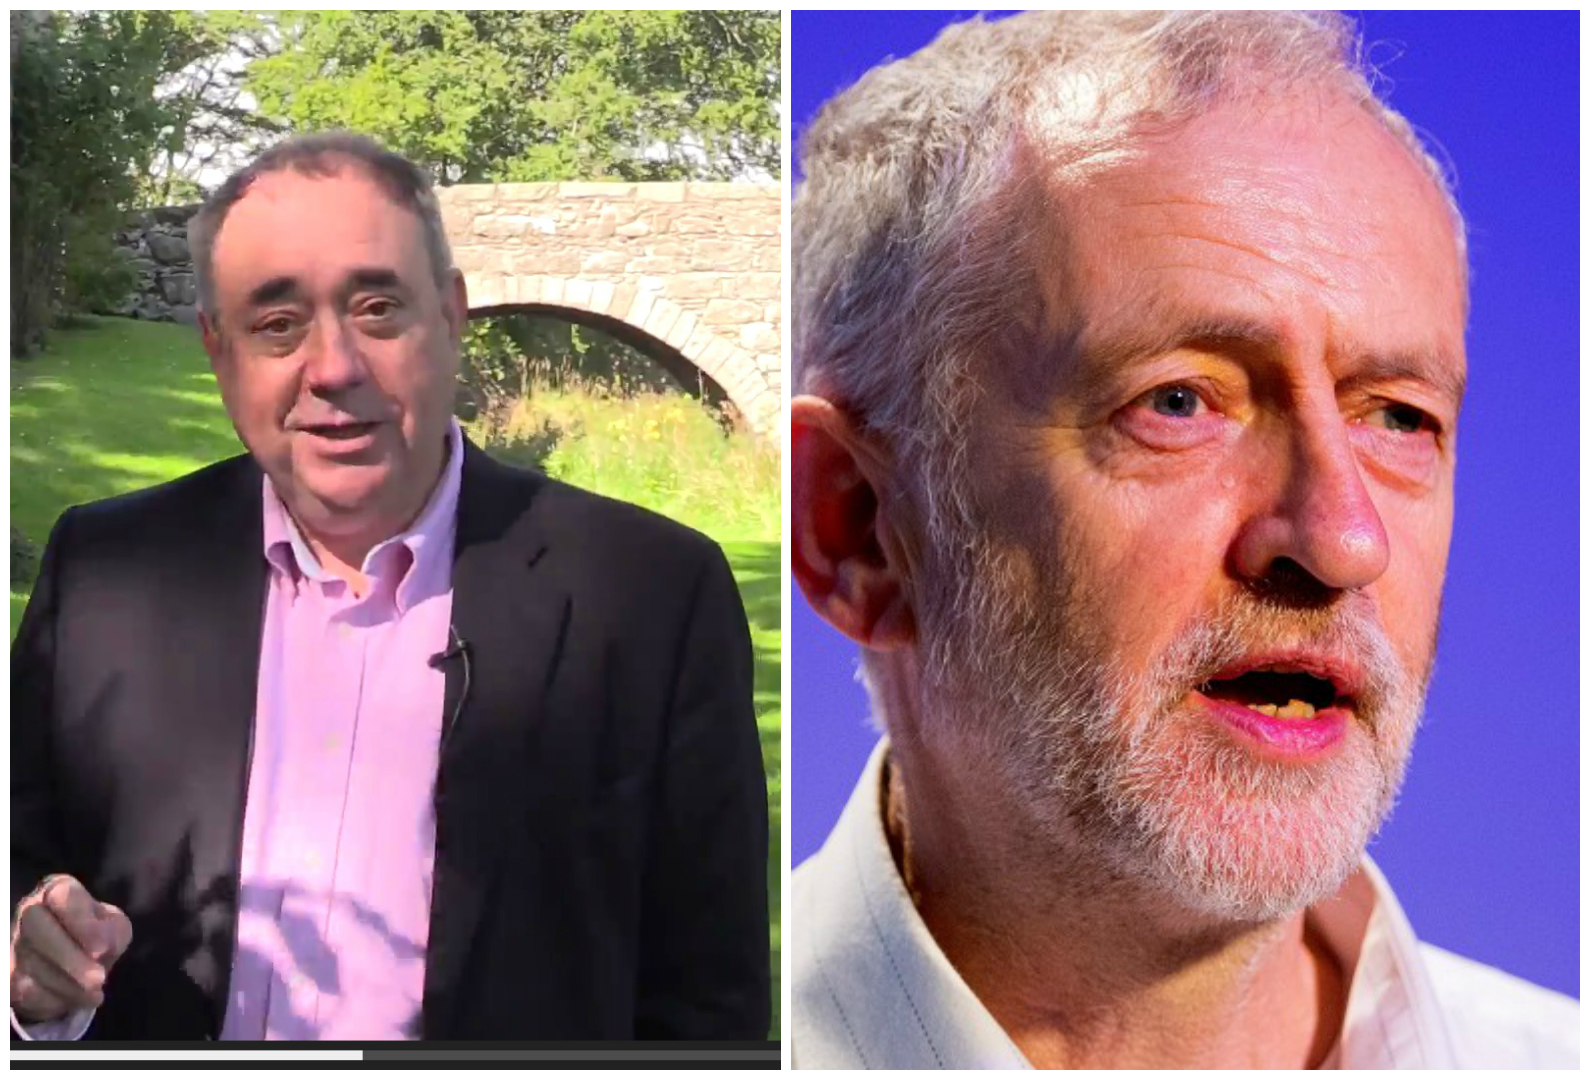 The new Labour leader will face dissent and slurs according to Alex Salmond